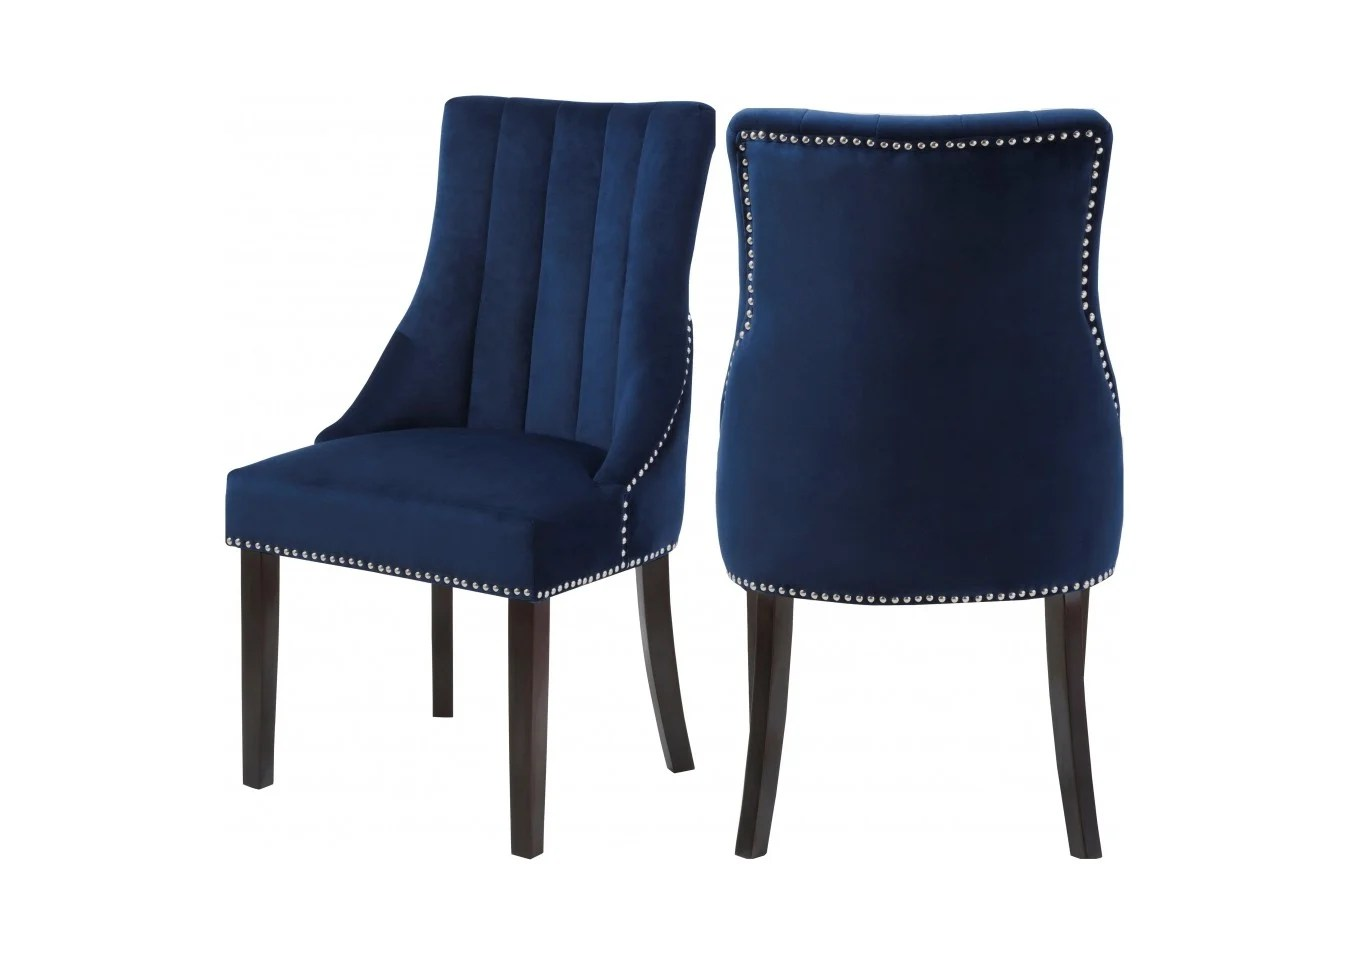 hight resolution of navy dining chairs